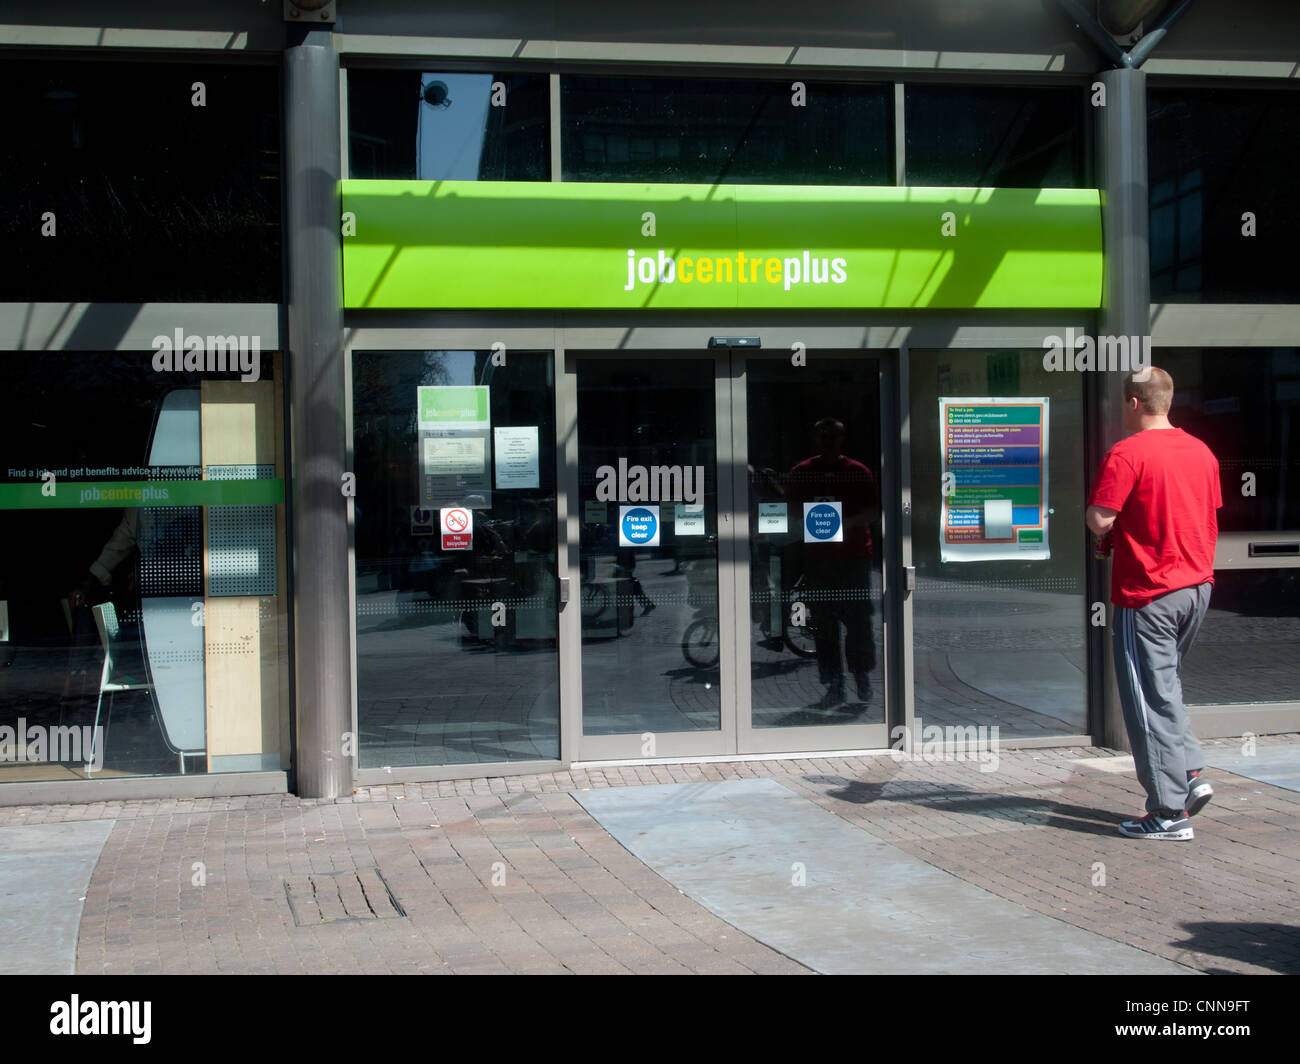 Jobcentre Plus entrance with a customer walking towards the doors - Stock Image